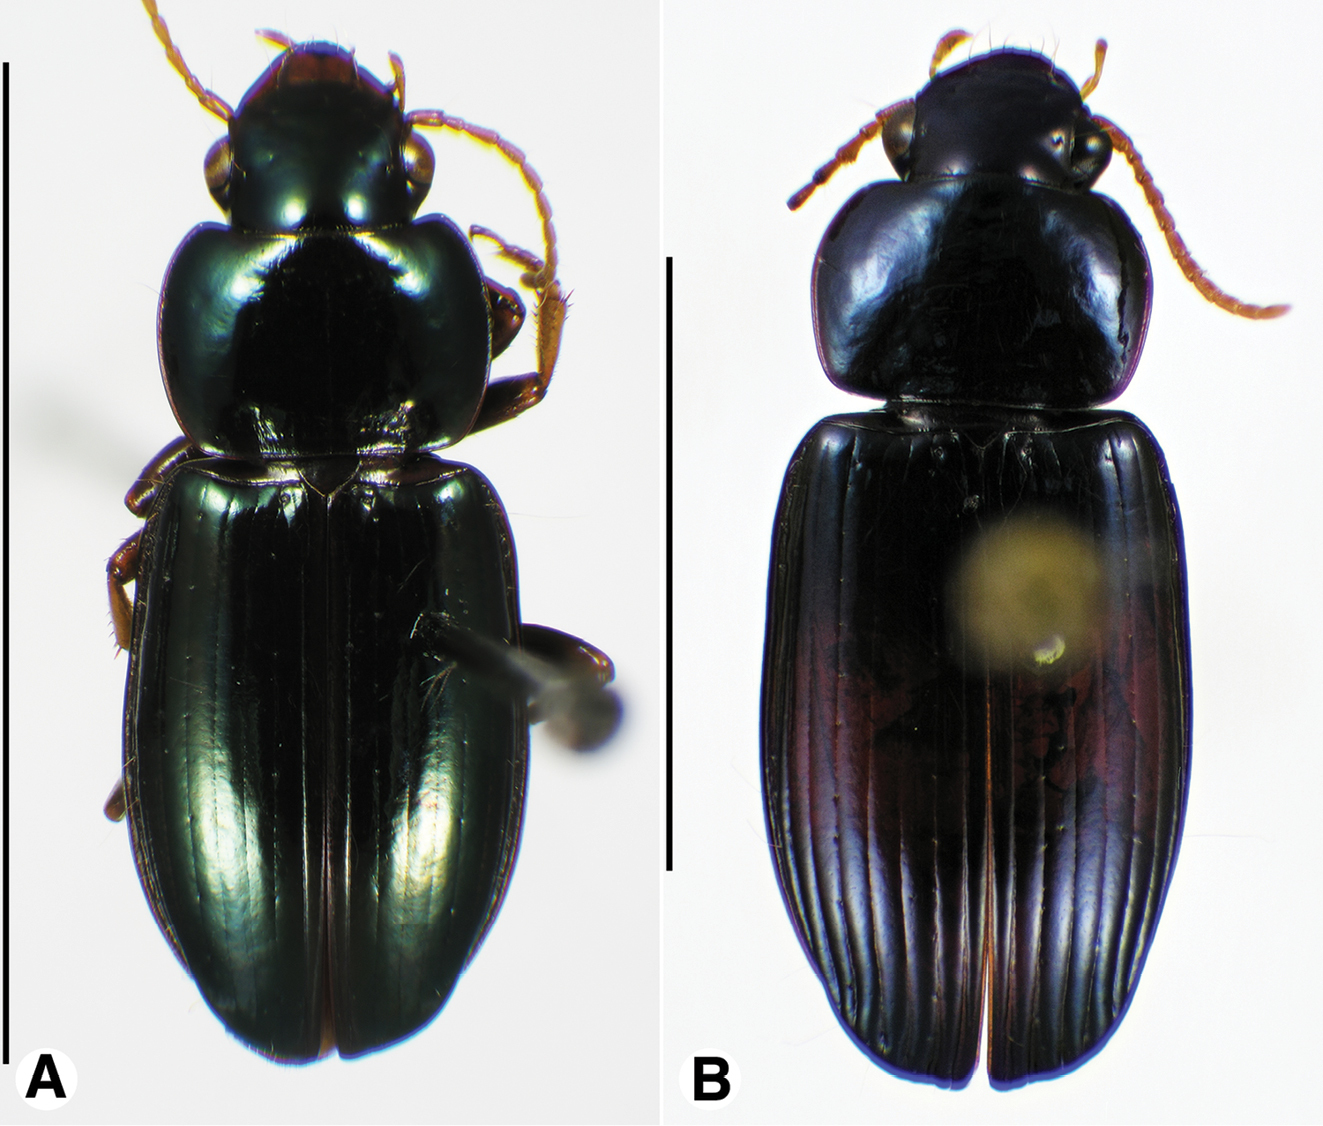 A taxonomic review of the Selenophori group (Coleoptera